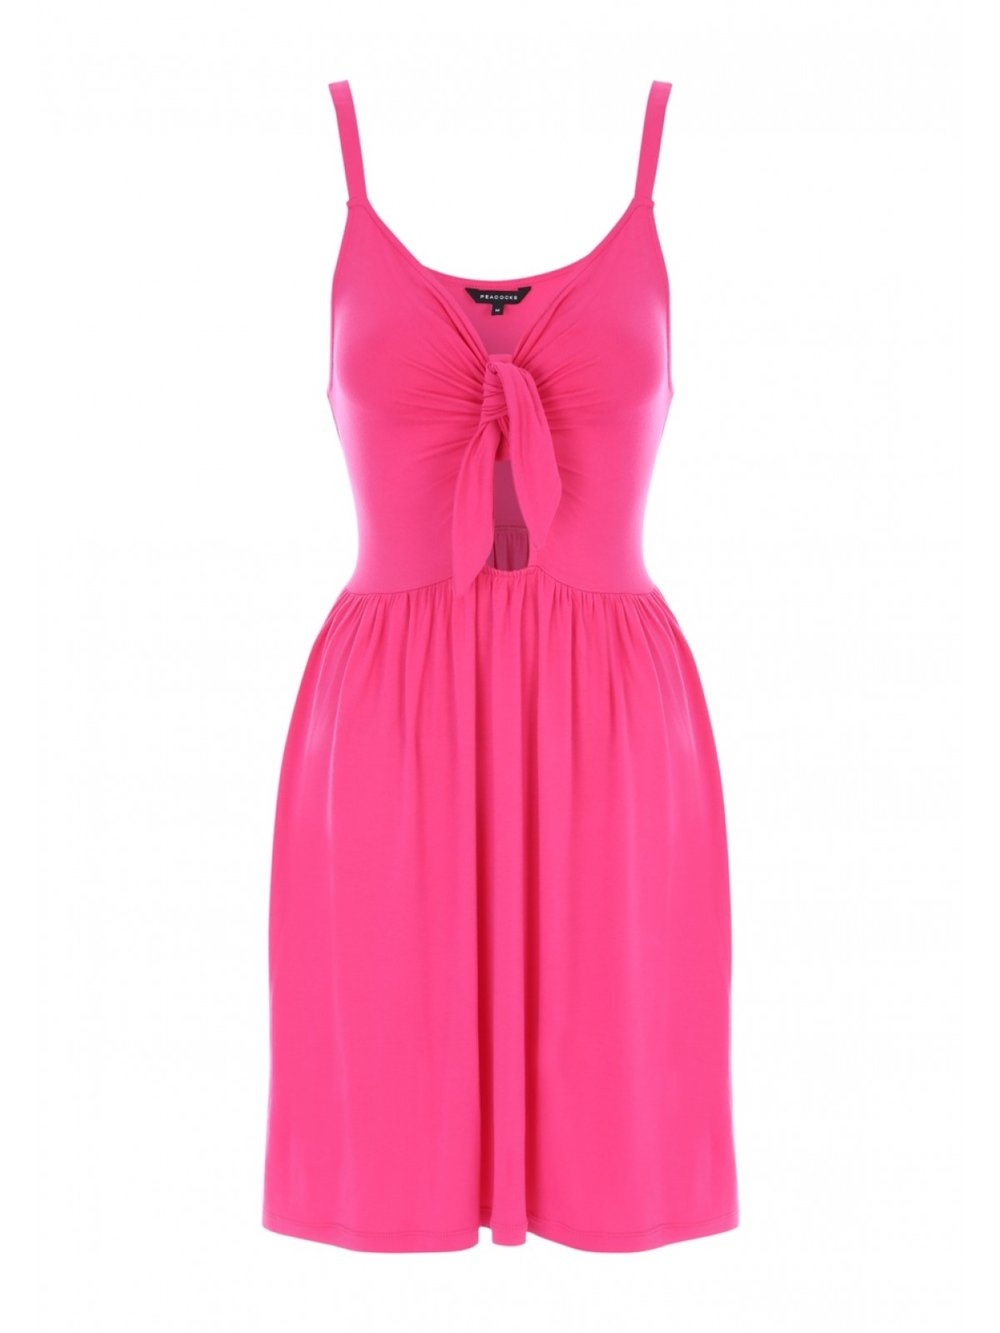 Peacocks short pink dress.jpg